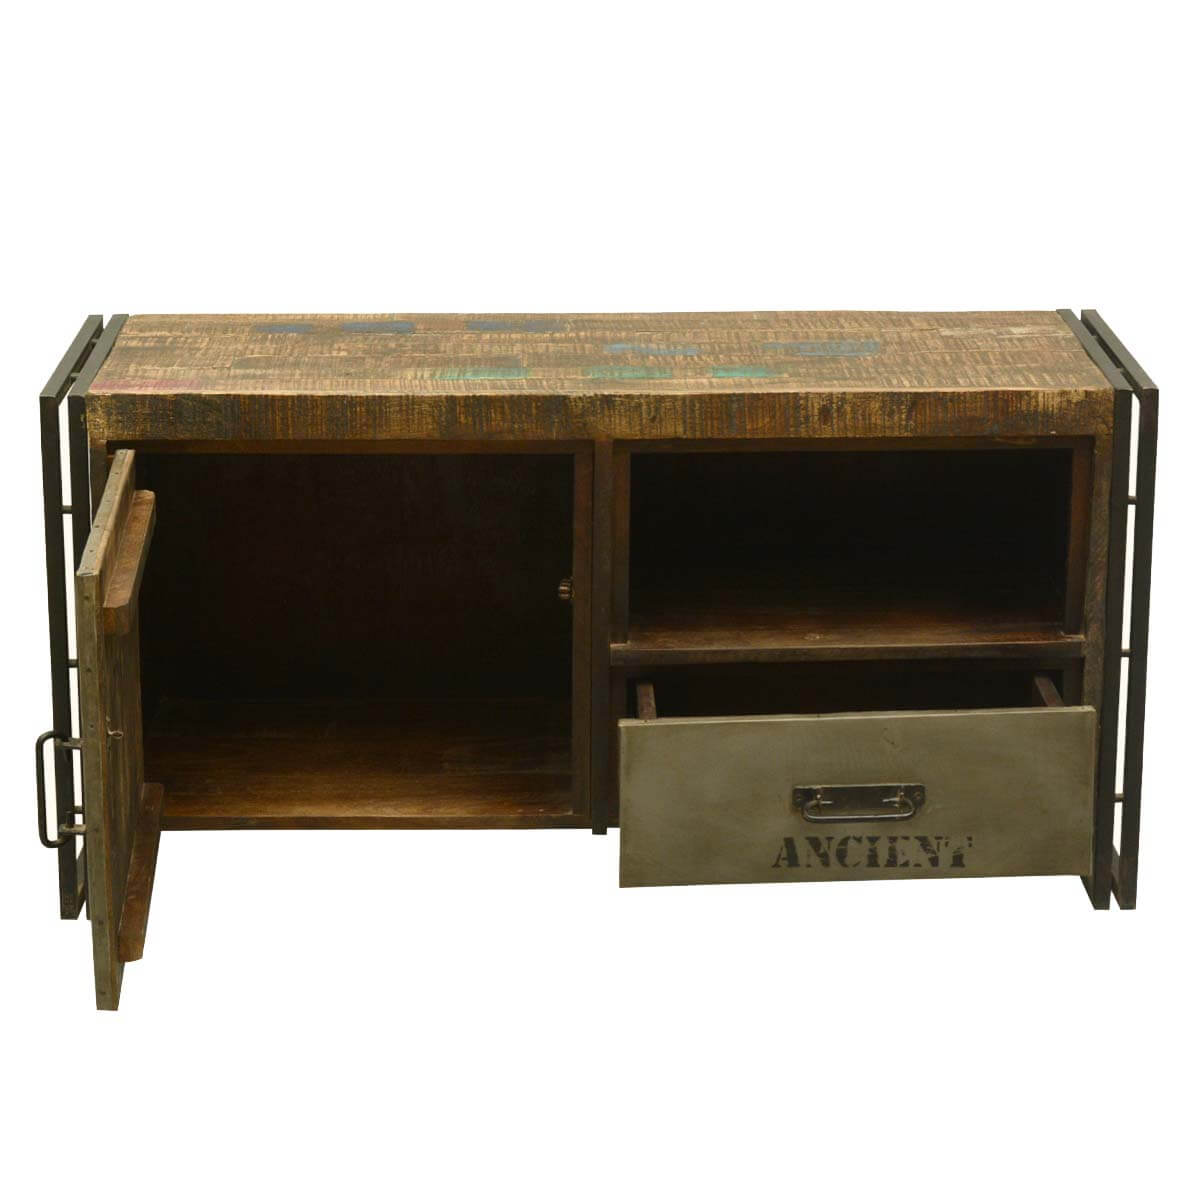 Stylish Rustic Media Console : ... Room Rustic Modern Industrial Reclaimed Wood and Iron Media Console